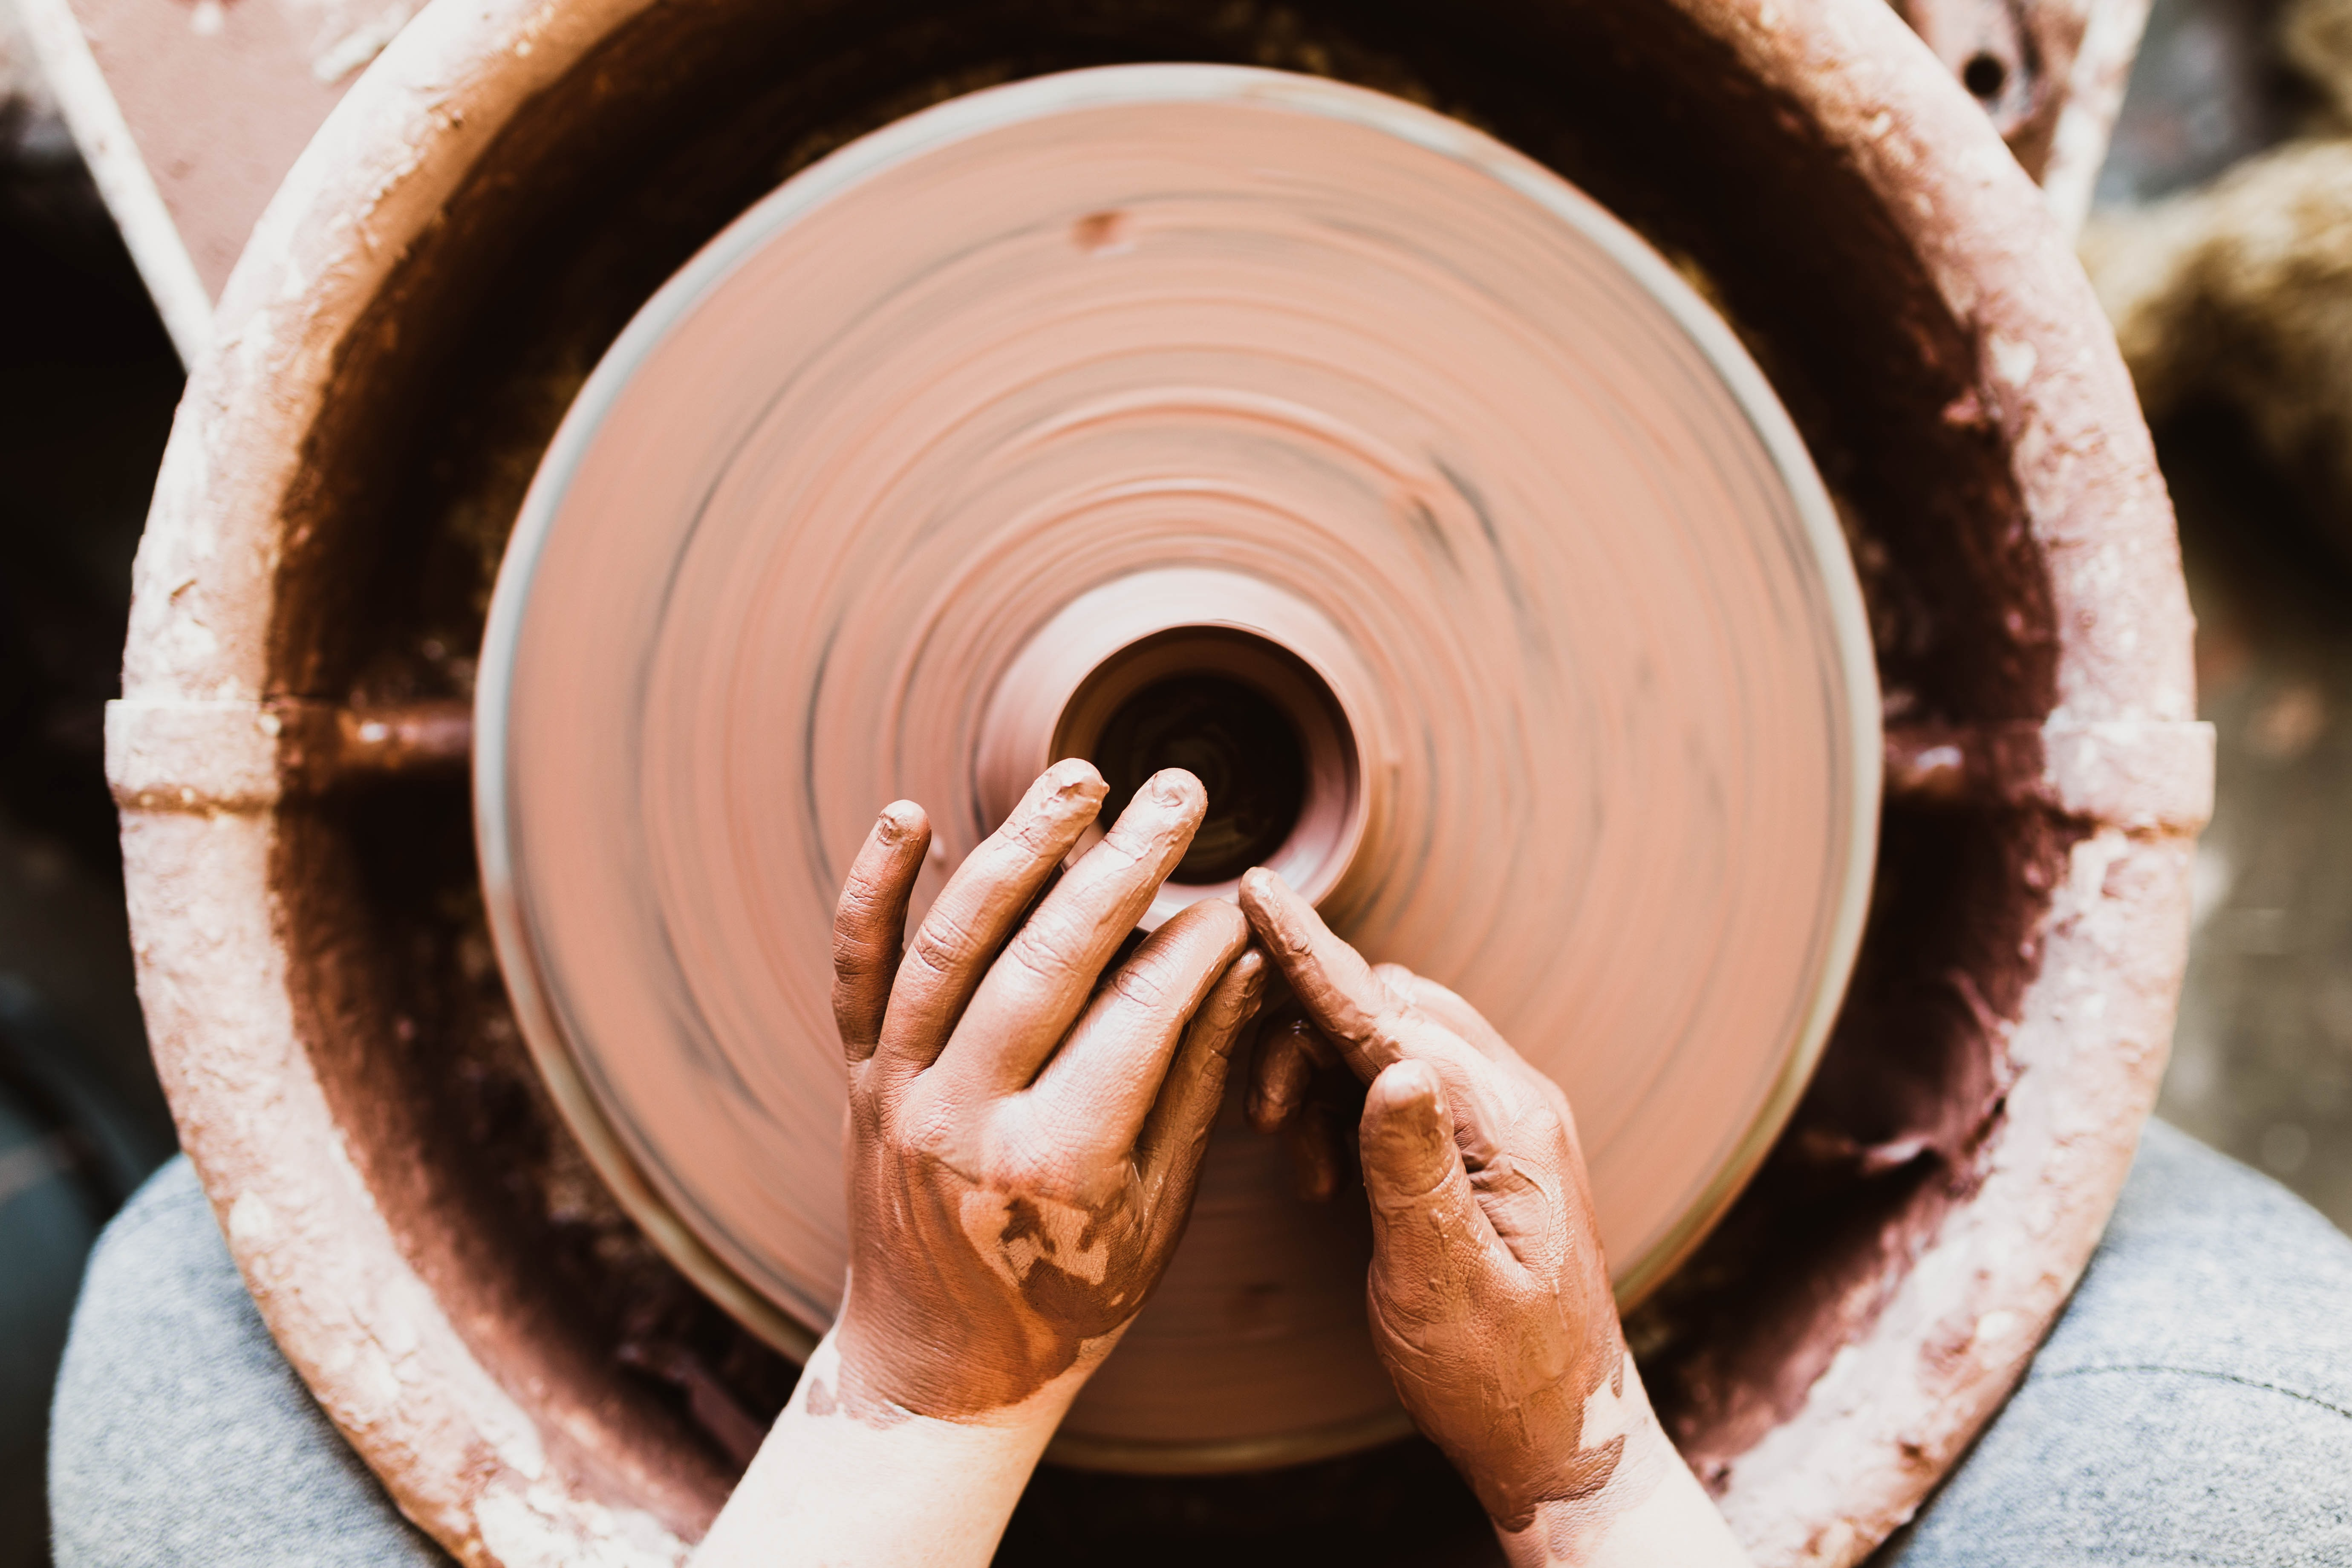 A person's hands crafting pottery on a spinning wheel